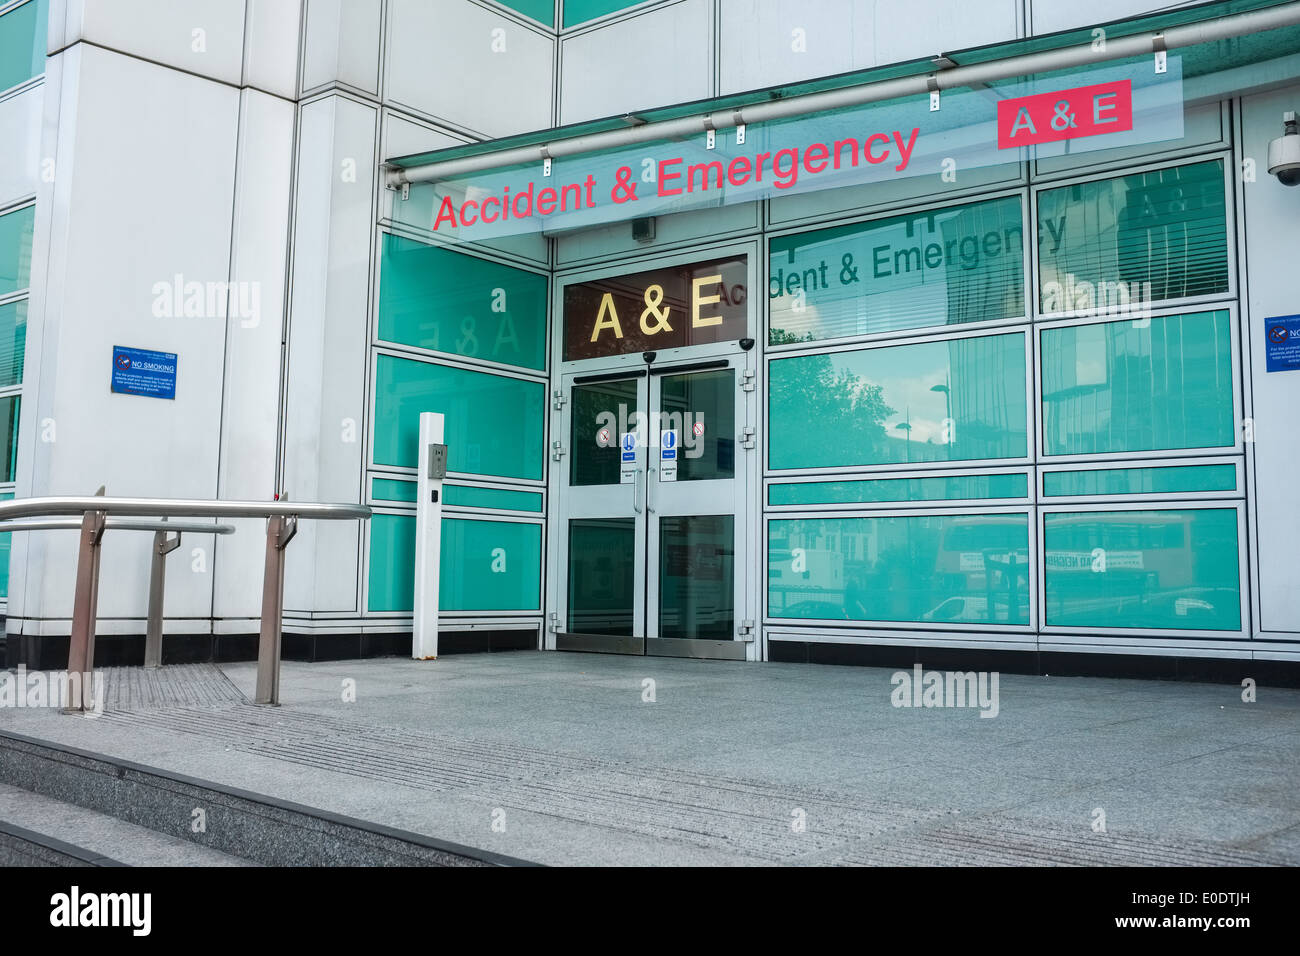 The entrance to university college hospital accident emergency the entrance to university college hospital accident emergency stock photo 69146185 alamy altavistaventures